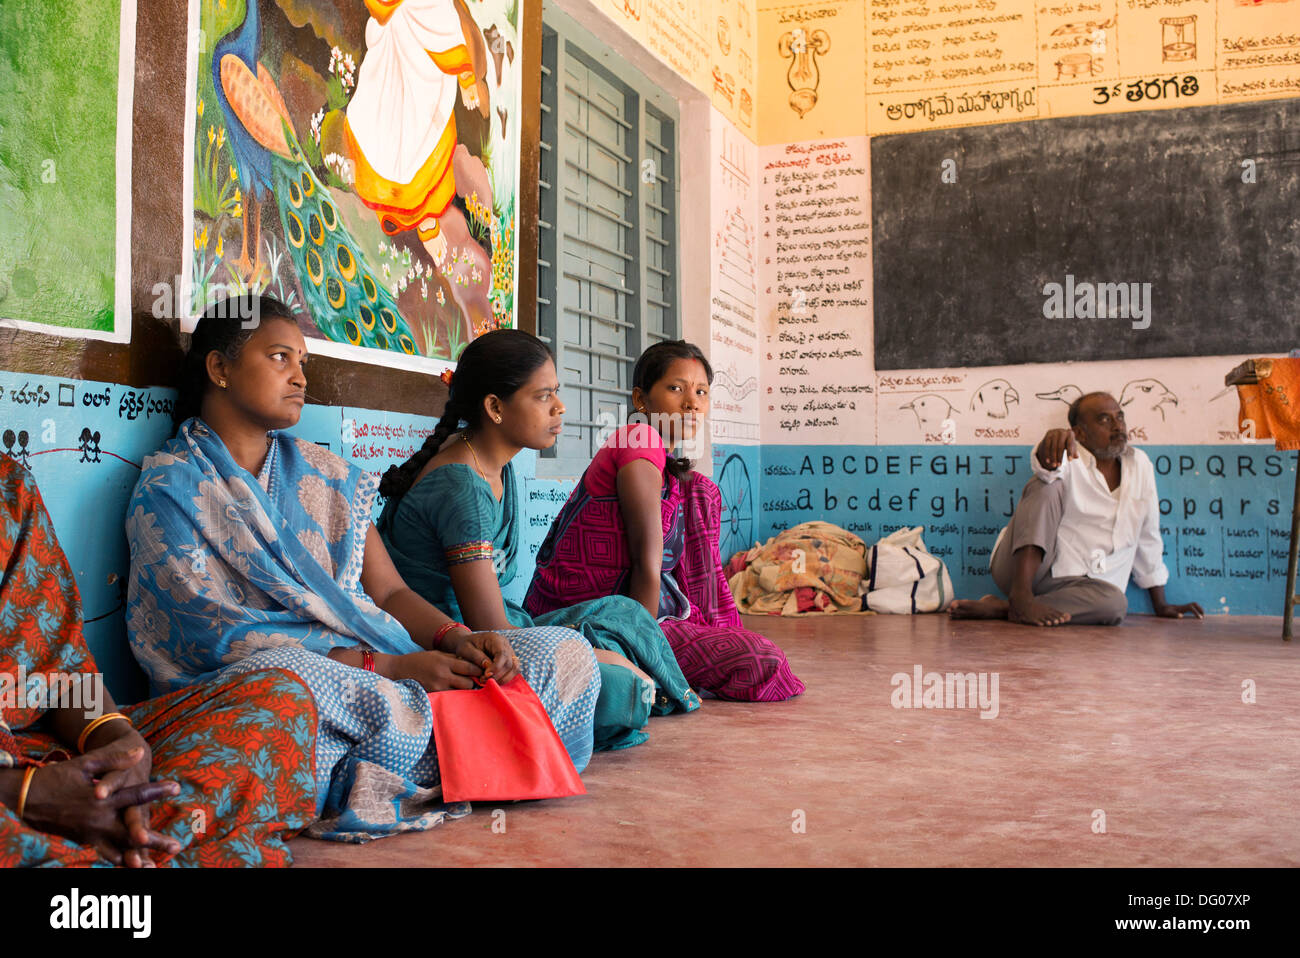 Indian women waiting outside Pediatric clinic at Sri Sathya Sai Baba mobile outreach hospital. Andhra Pradesh, India - Stock Image